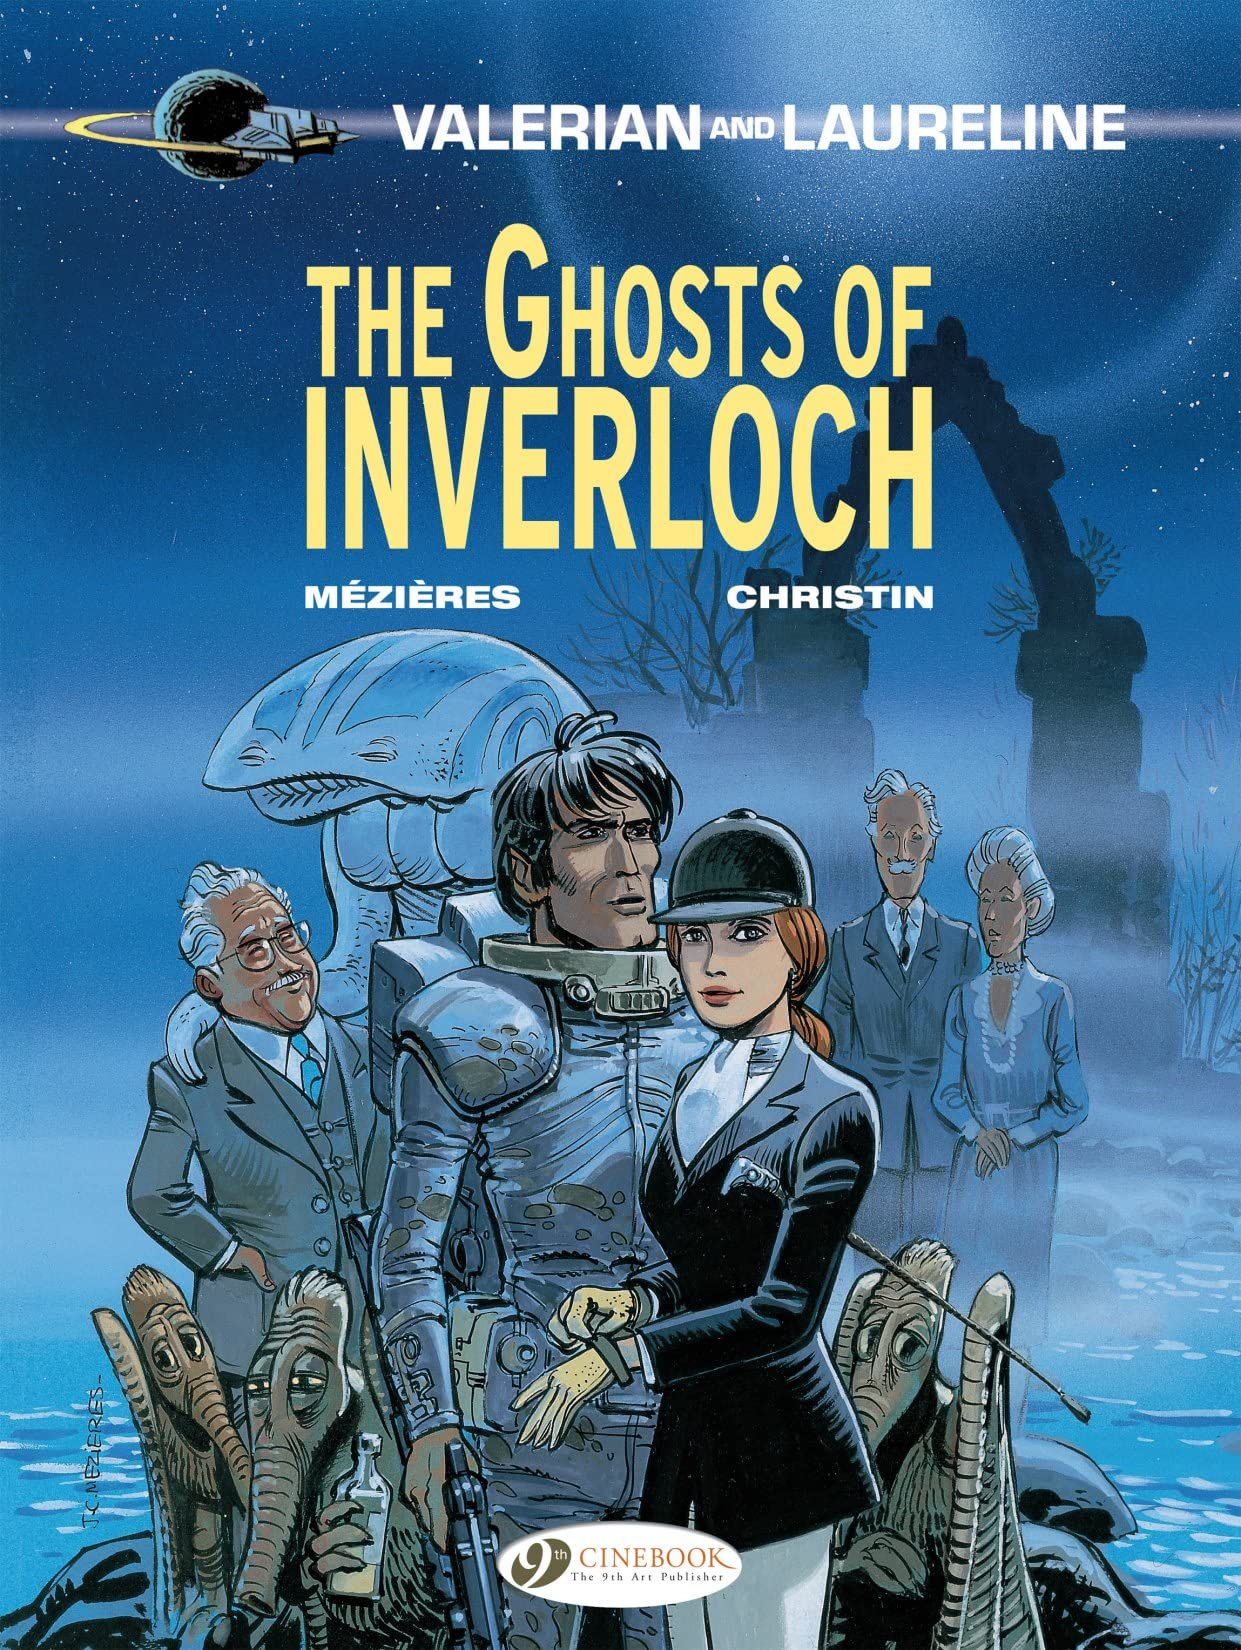 Valerian and Laureline Vol. 11: The Ghosts of Inverloch